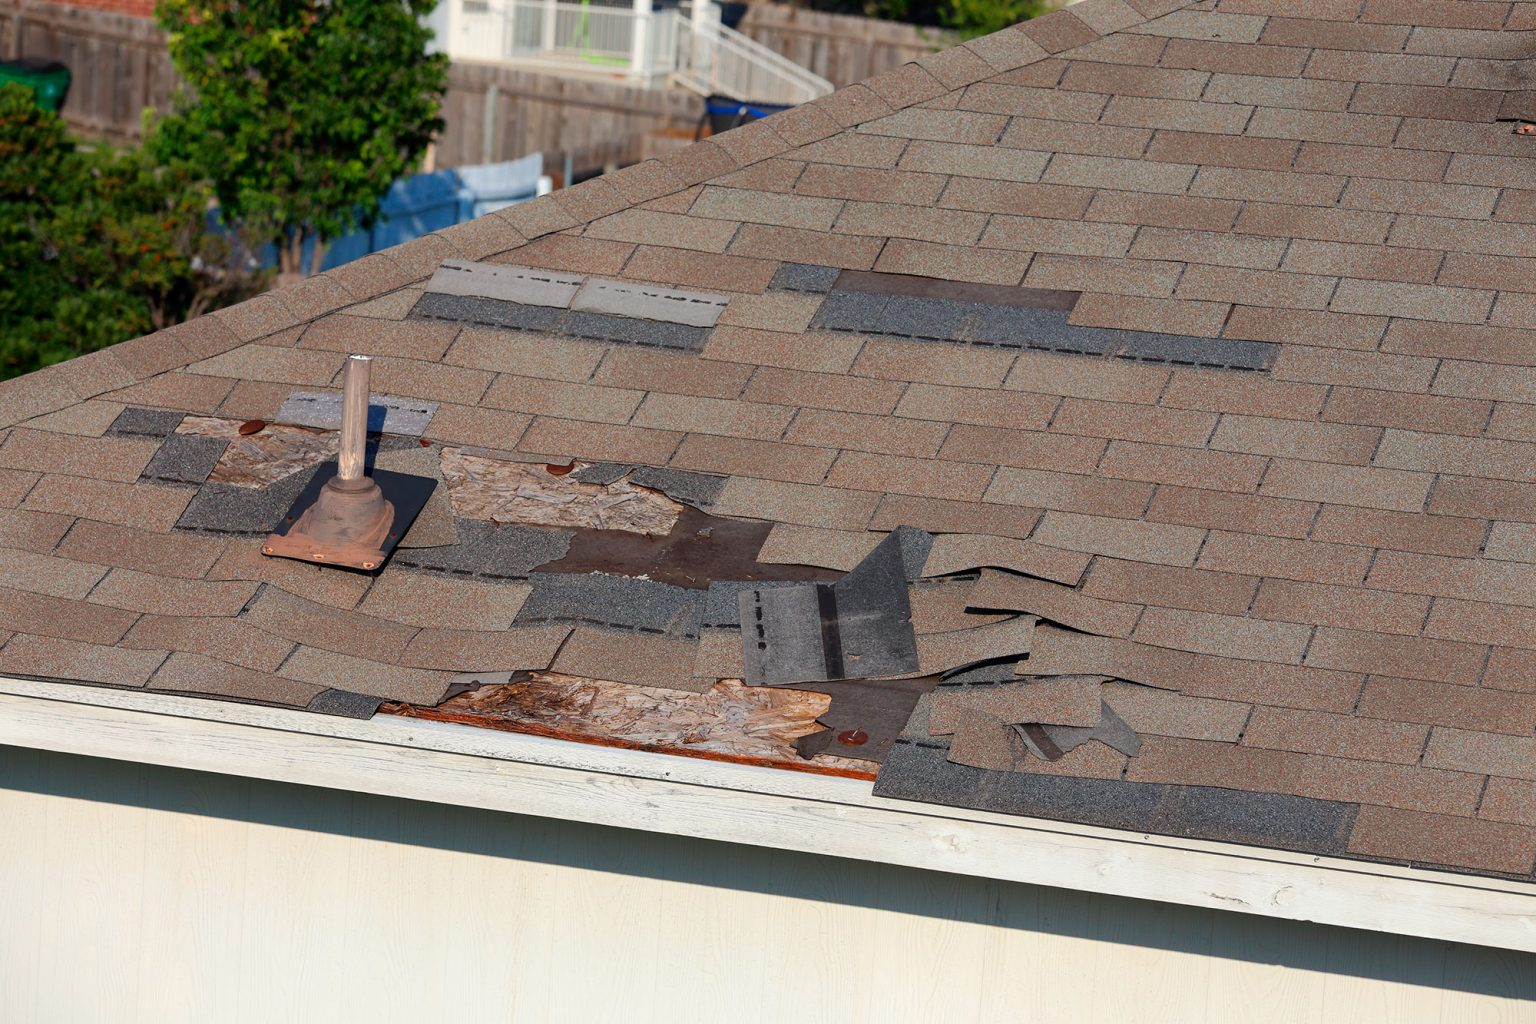 8 key steps to take when filing for roof damage